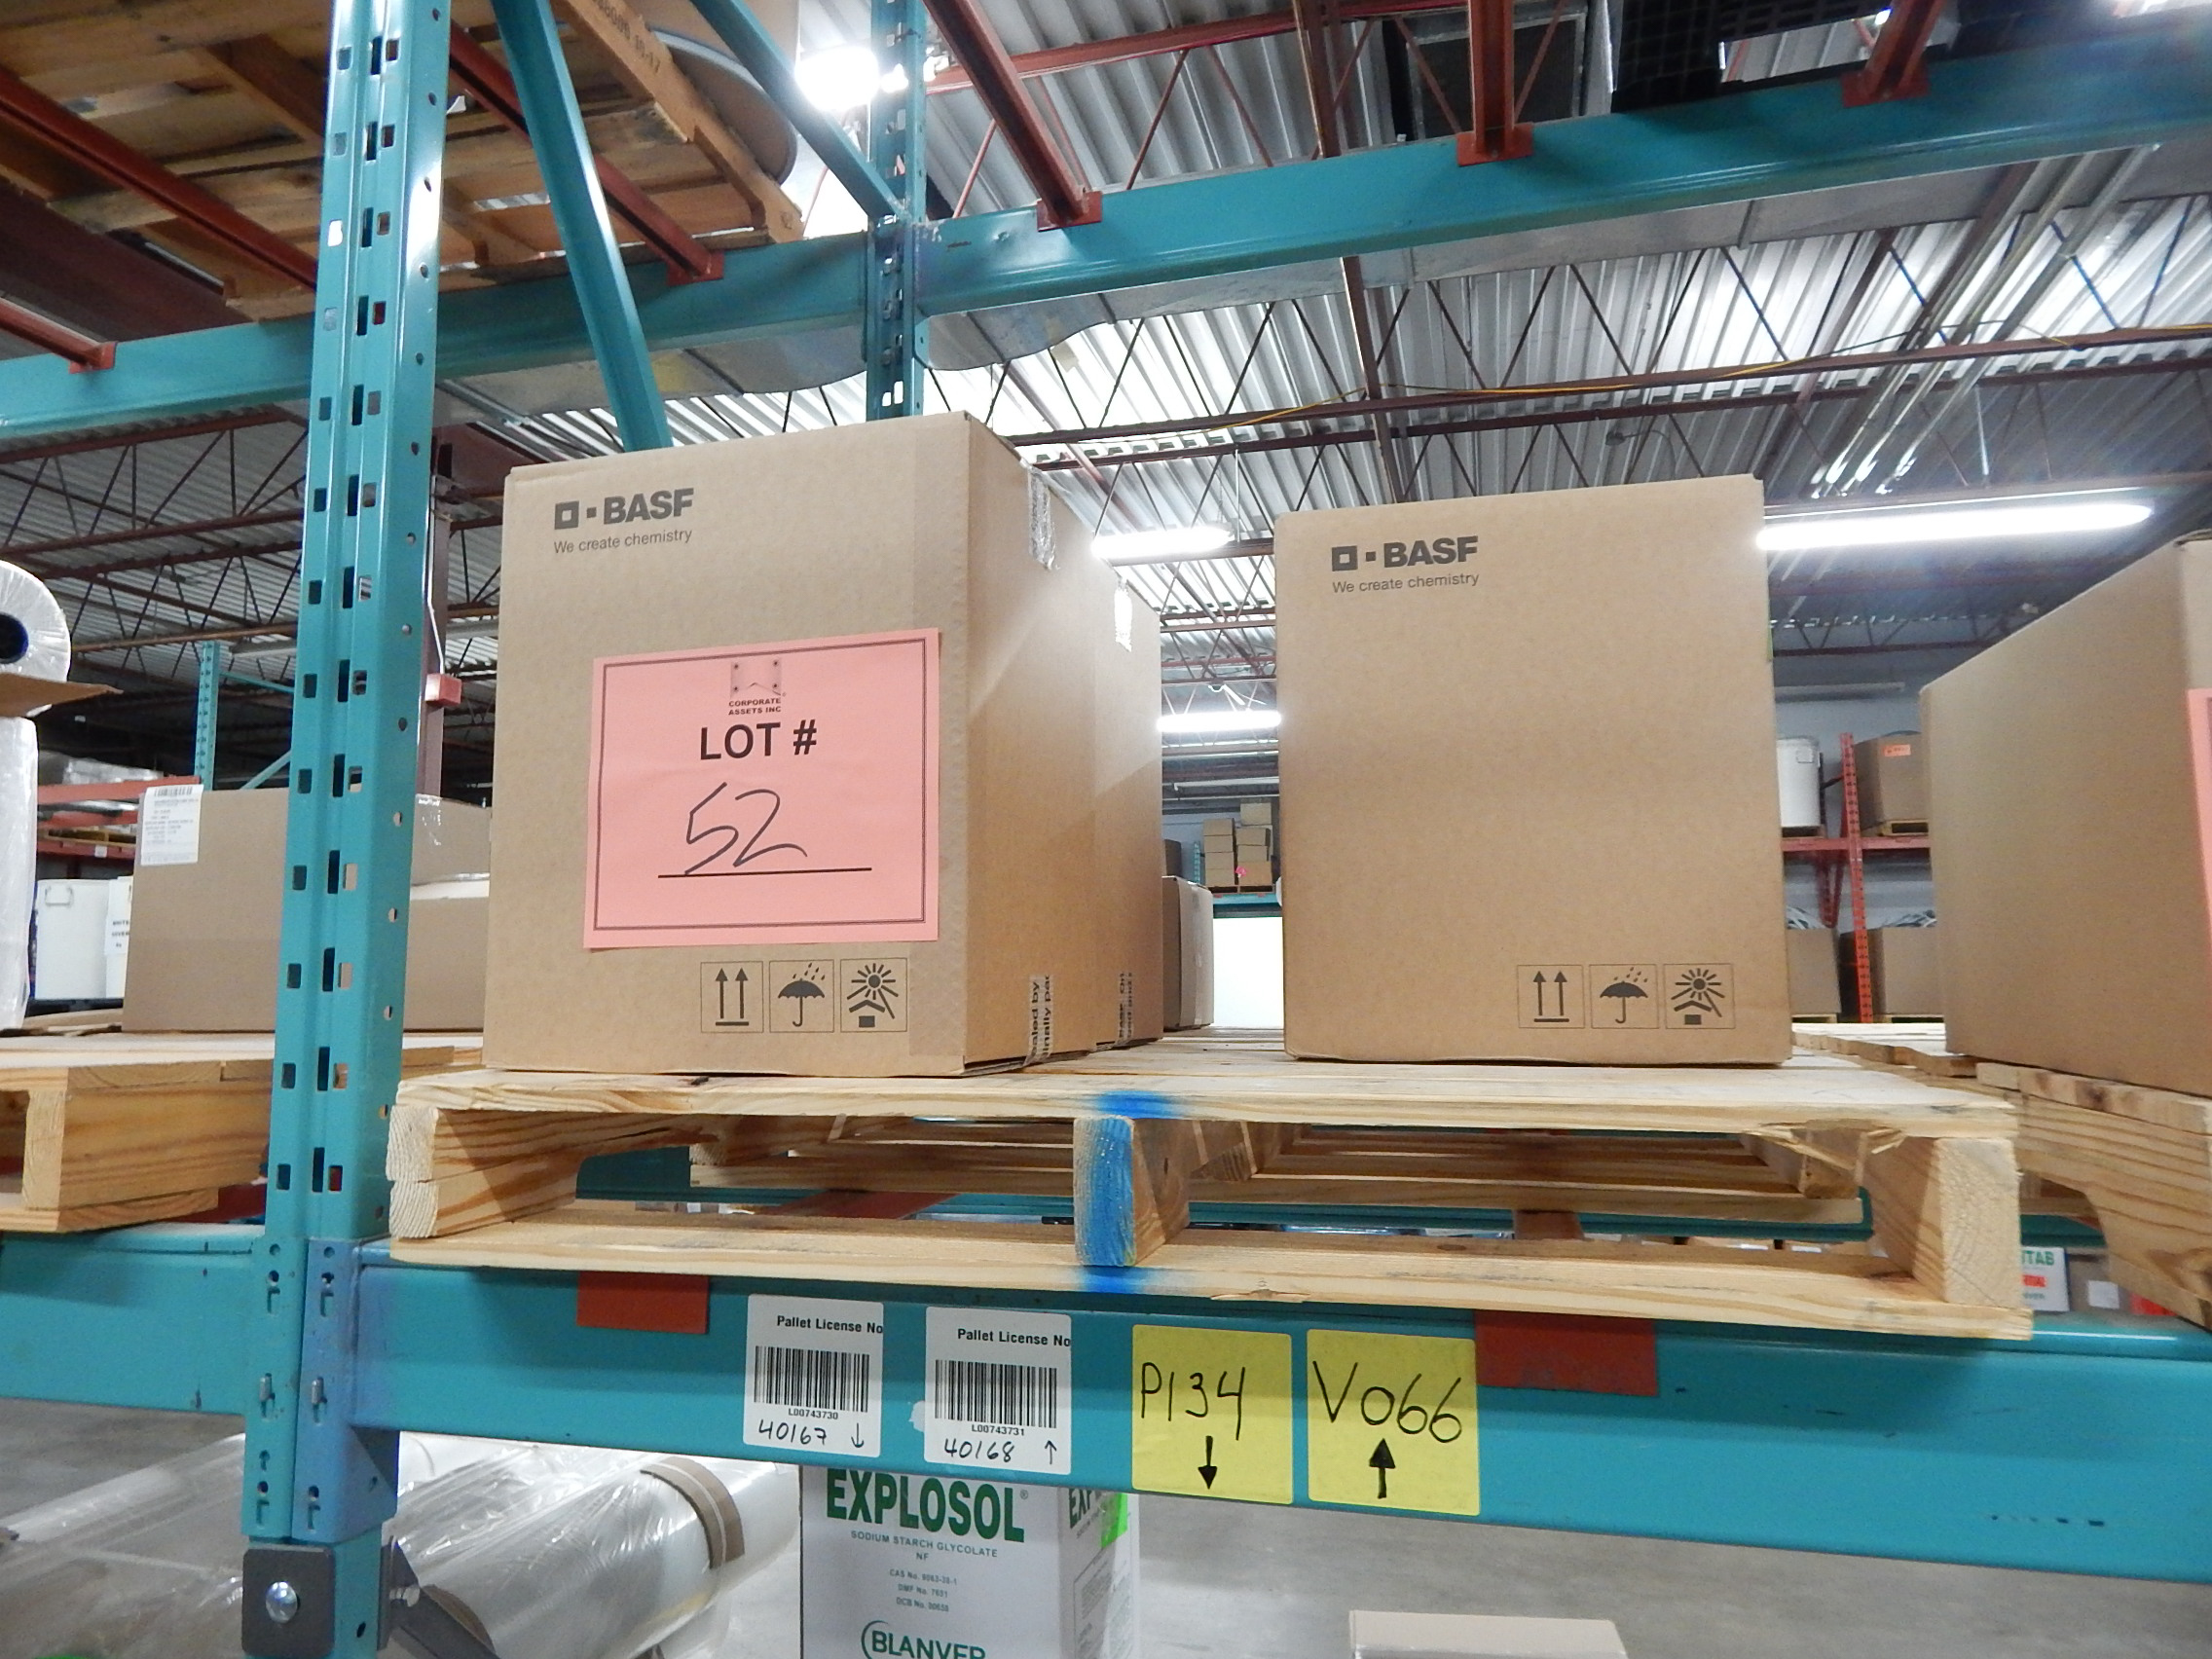 Lot 52 - LOT/ SKID WITH CONTENTS CONSISTING OF BOXES OF D-BASF VITAMIN D3